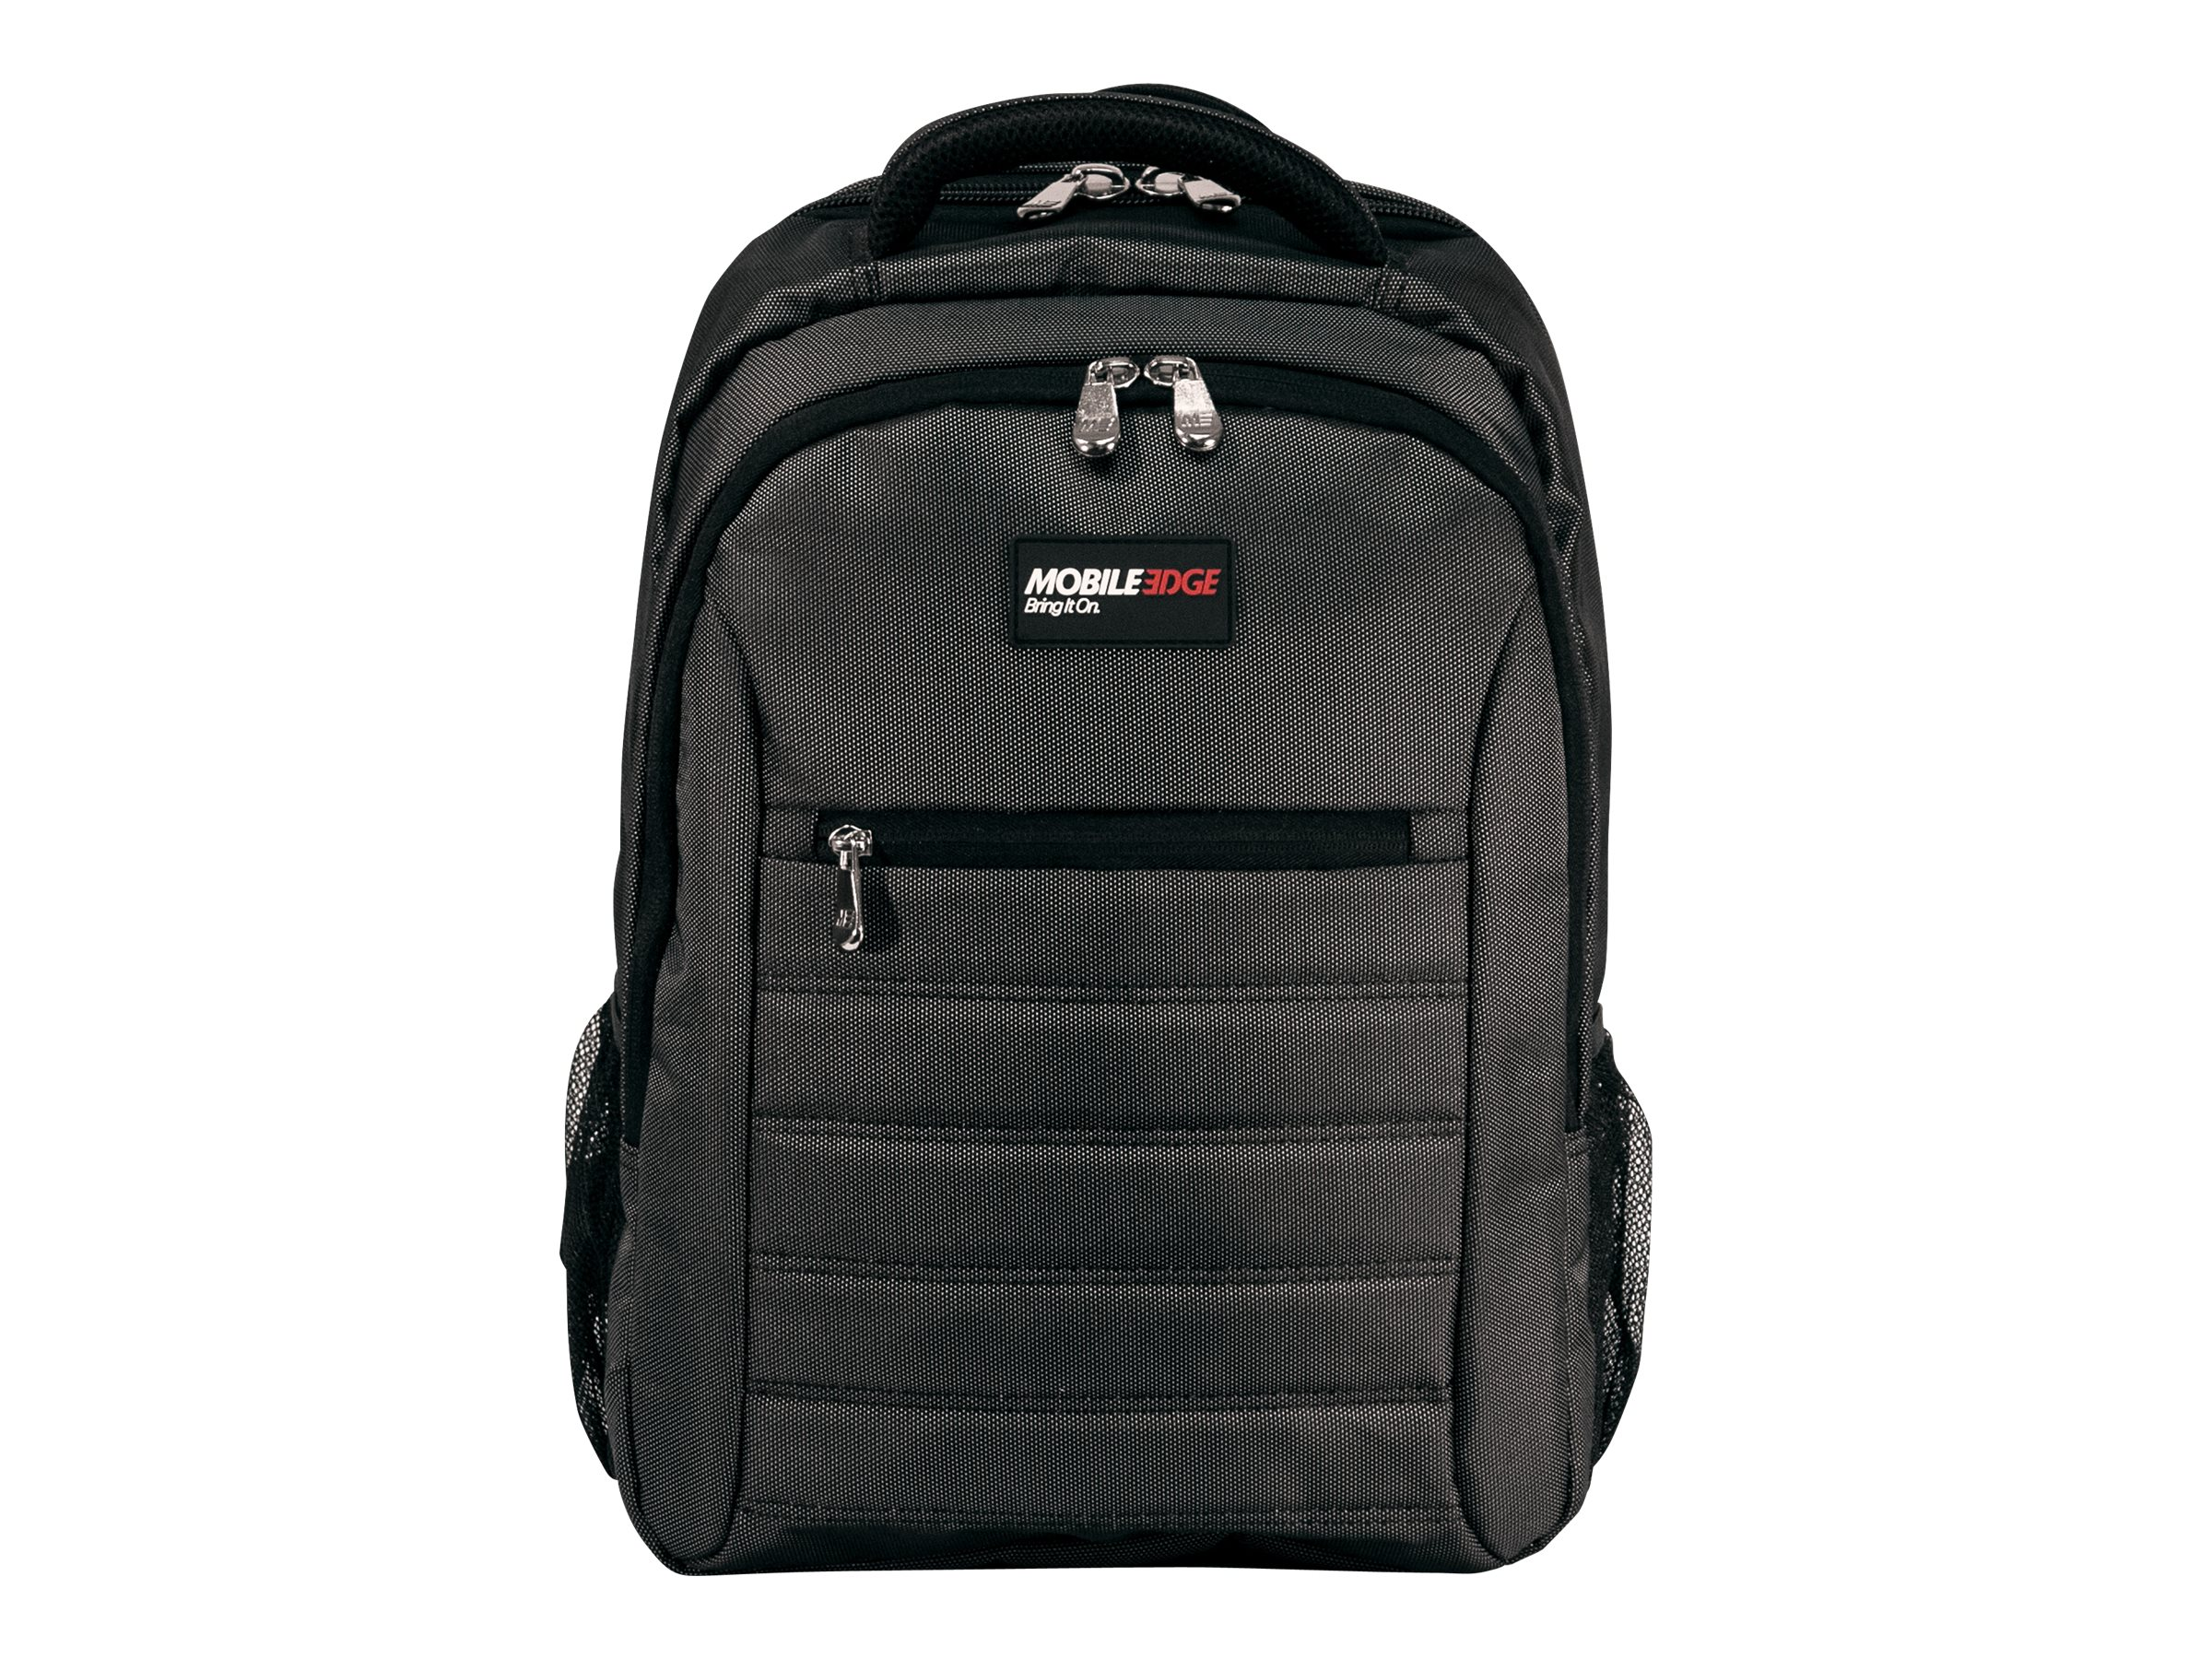 Mobile Edge SmartPack 16 17 for Mac, Charcoal, MEBPSP5, 31030966, Carrying Cases - Other